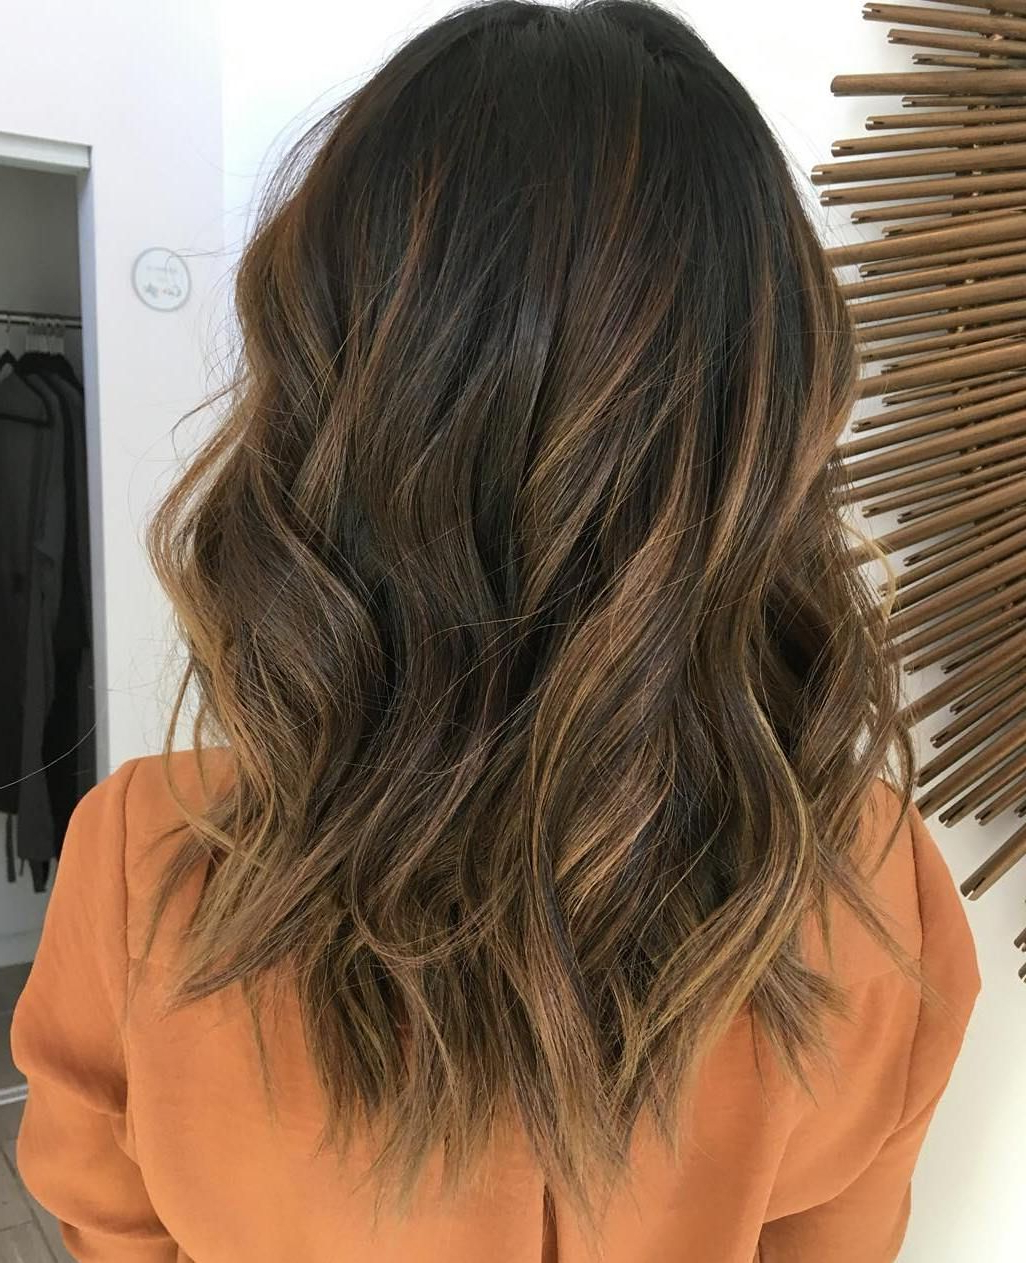 Hair Color : Ombre Hair Color From Dark To Blonde Women Medium Pertaining To Most Current Medium Hairstyles And Highlights (View 8 of 20)